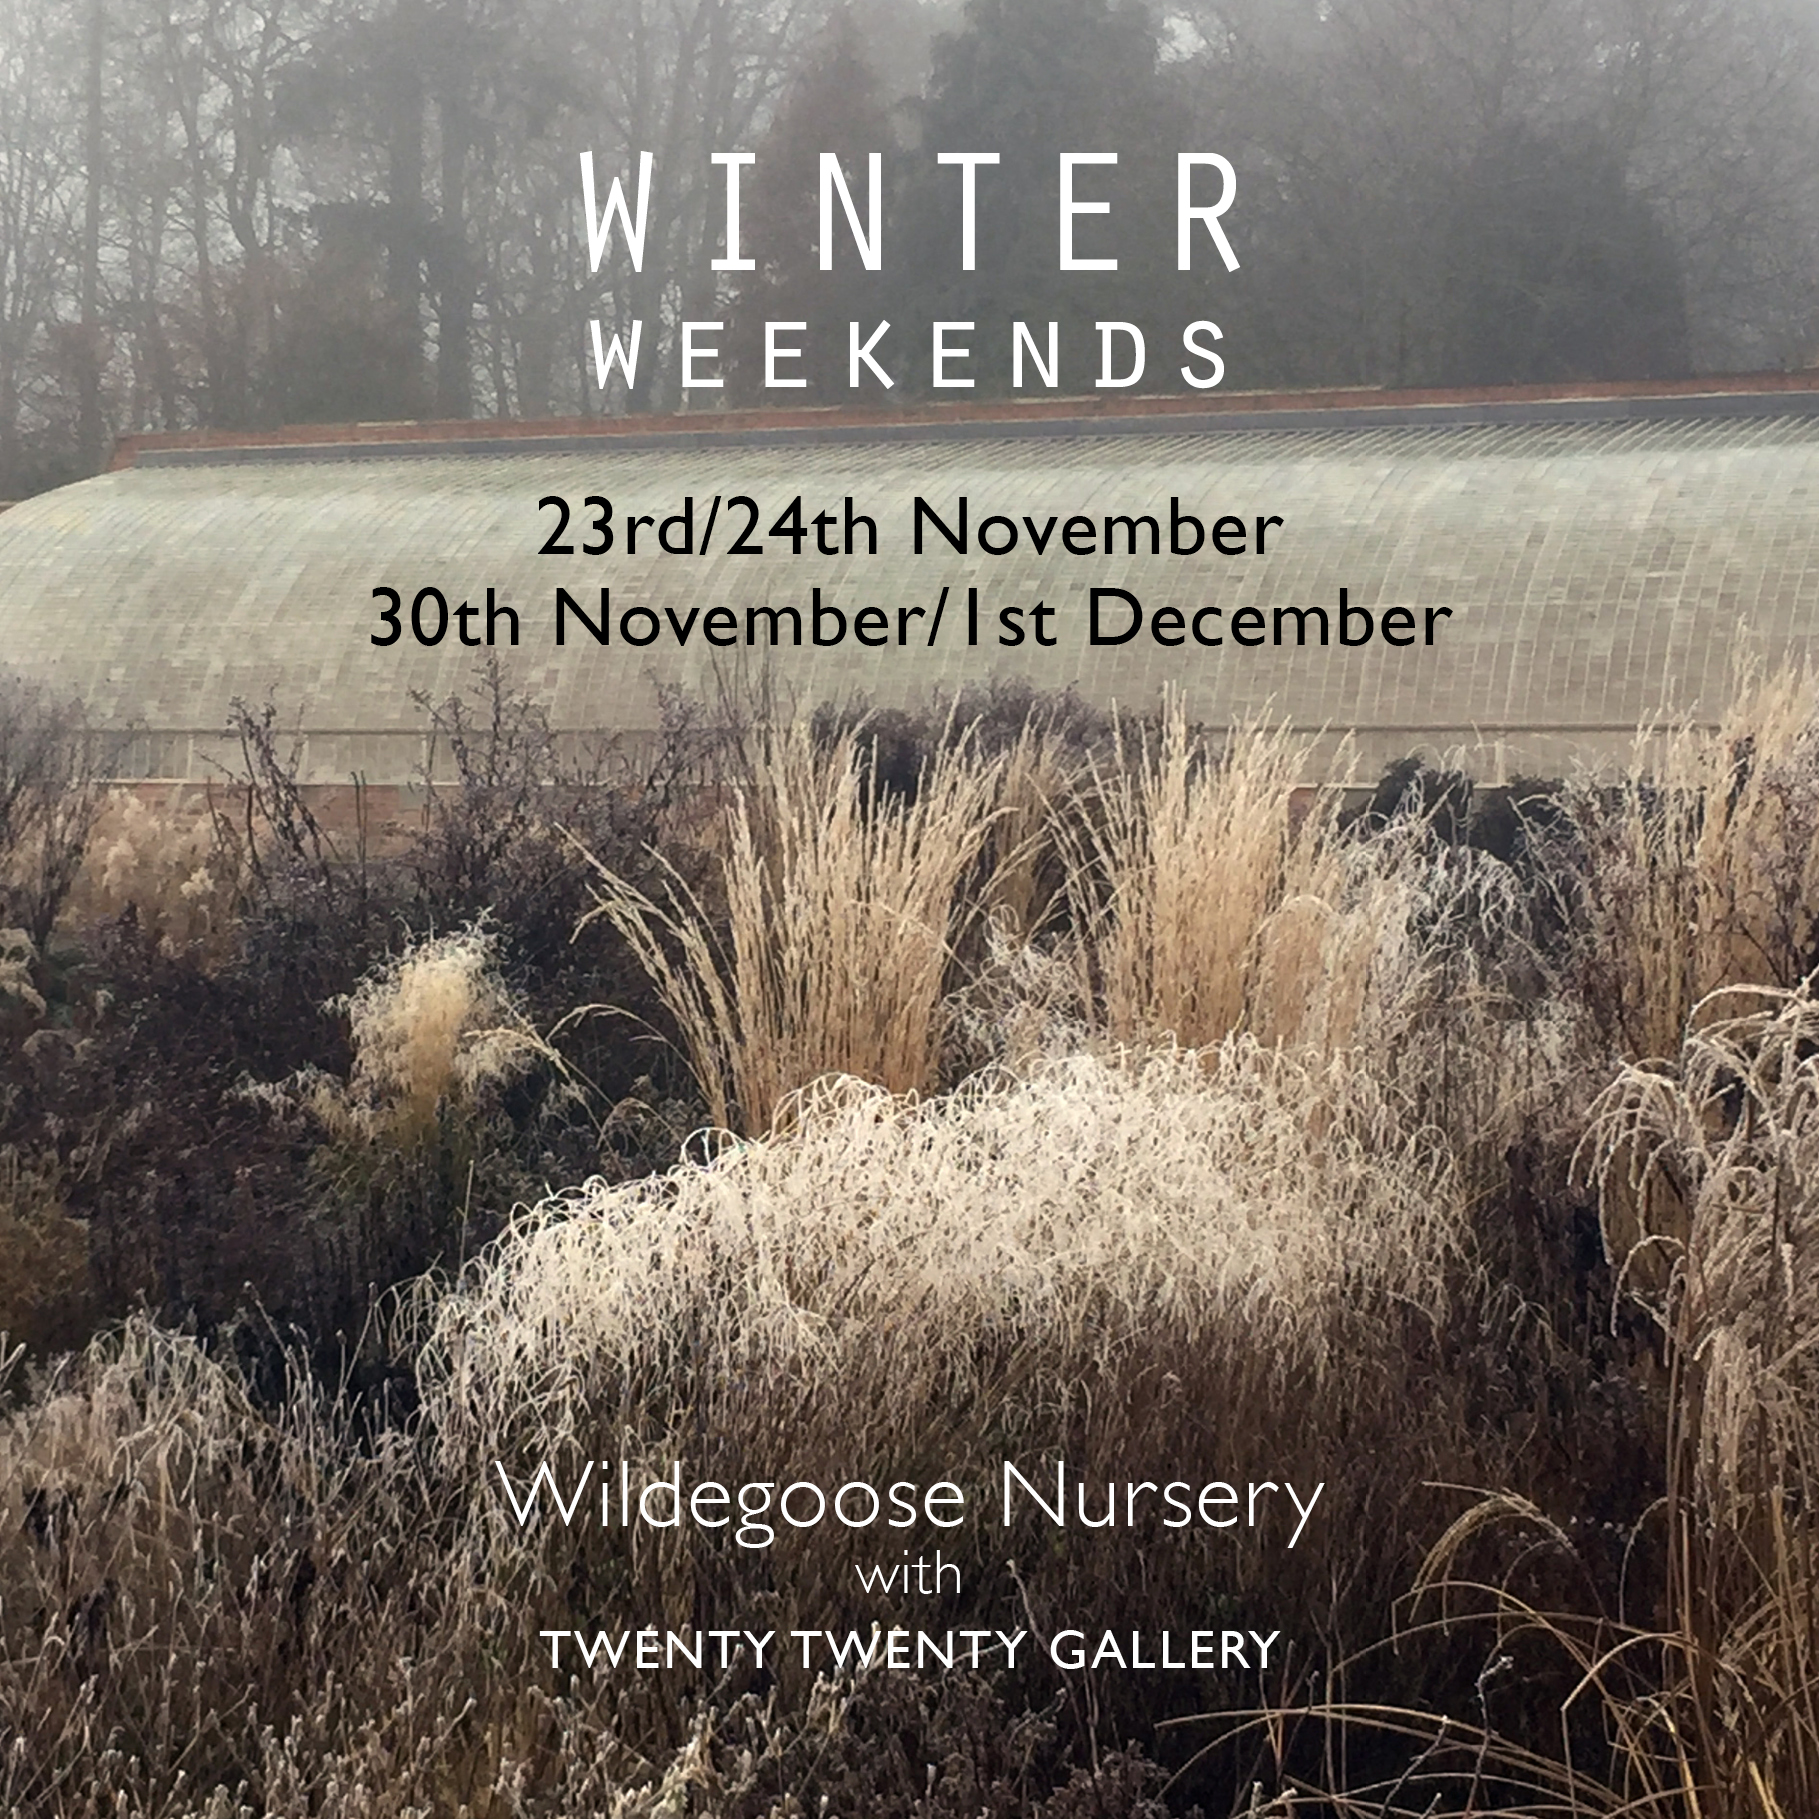 Winter Weekends at Wildegoose Nursery